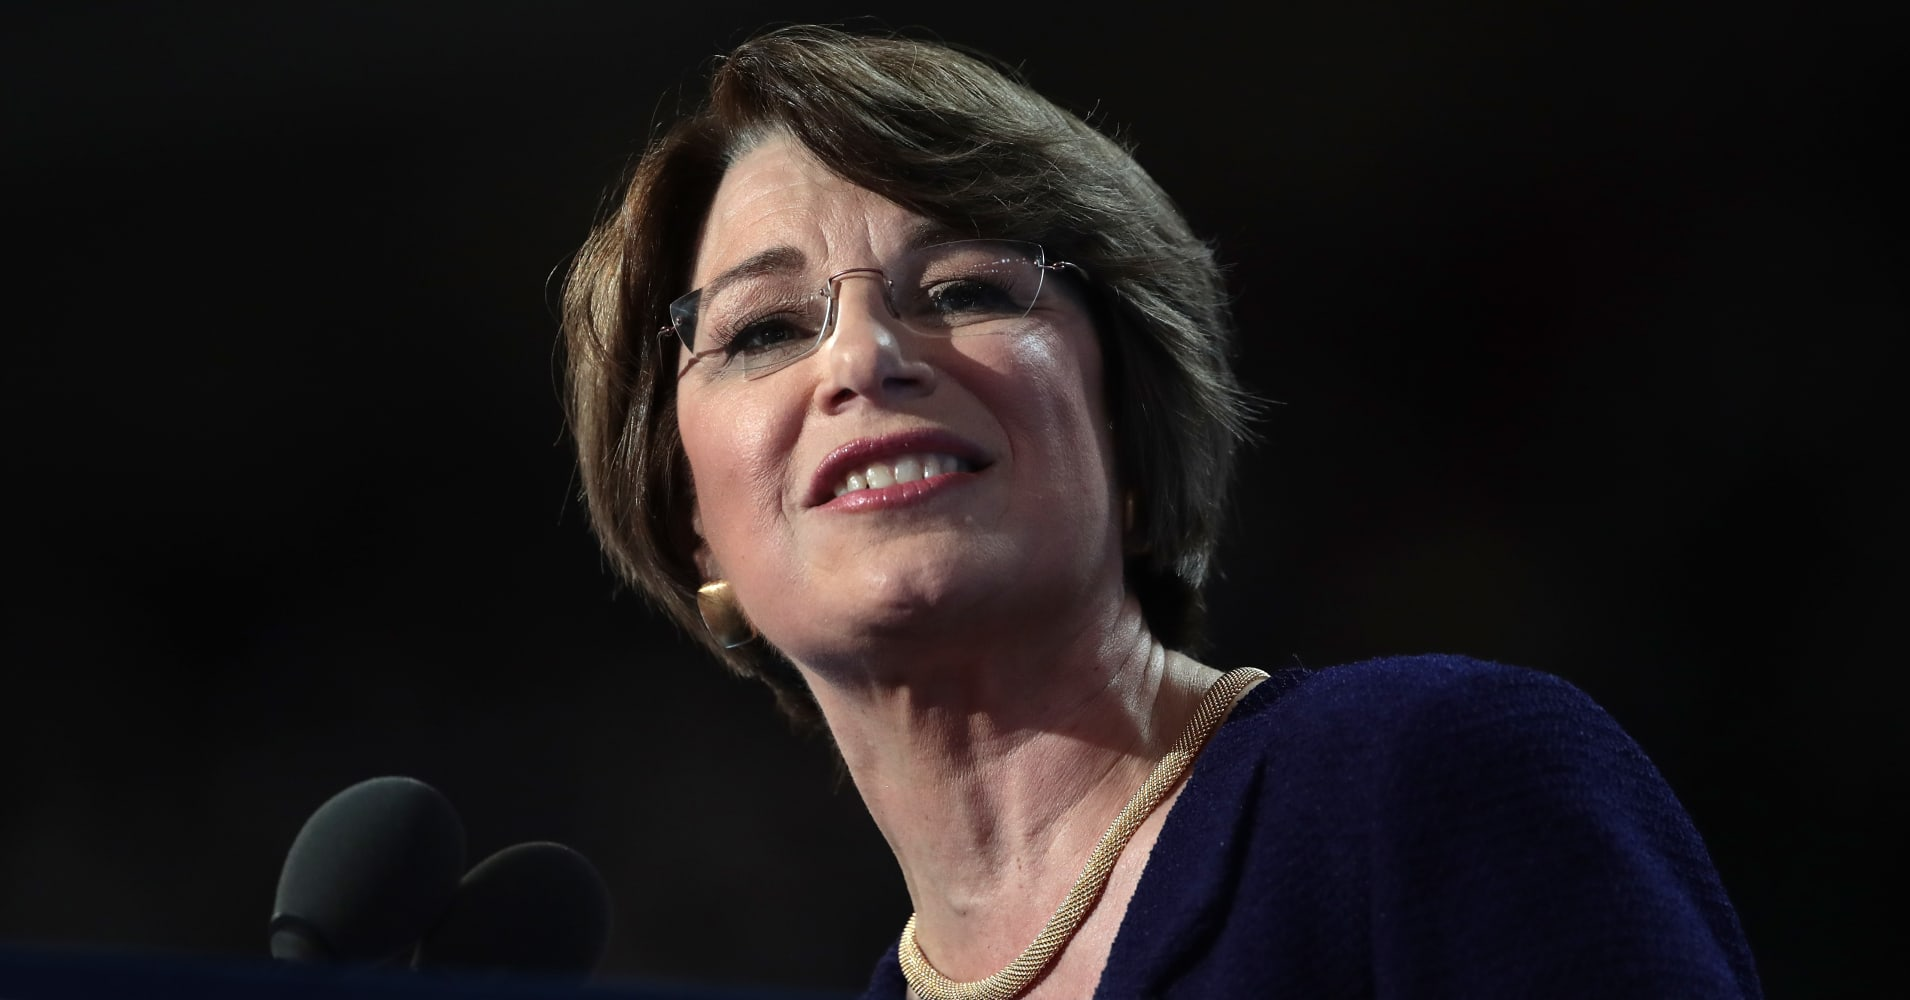 Democratic Sen. Amy Klobuchar is running for president — here are her top priorities